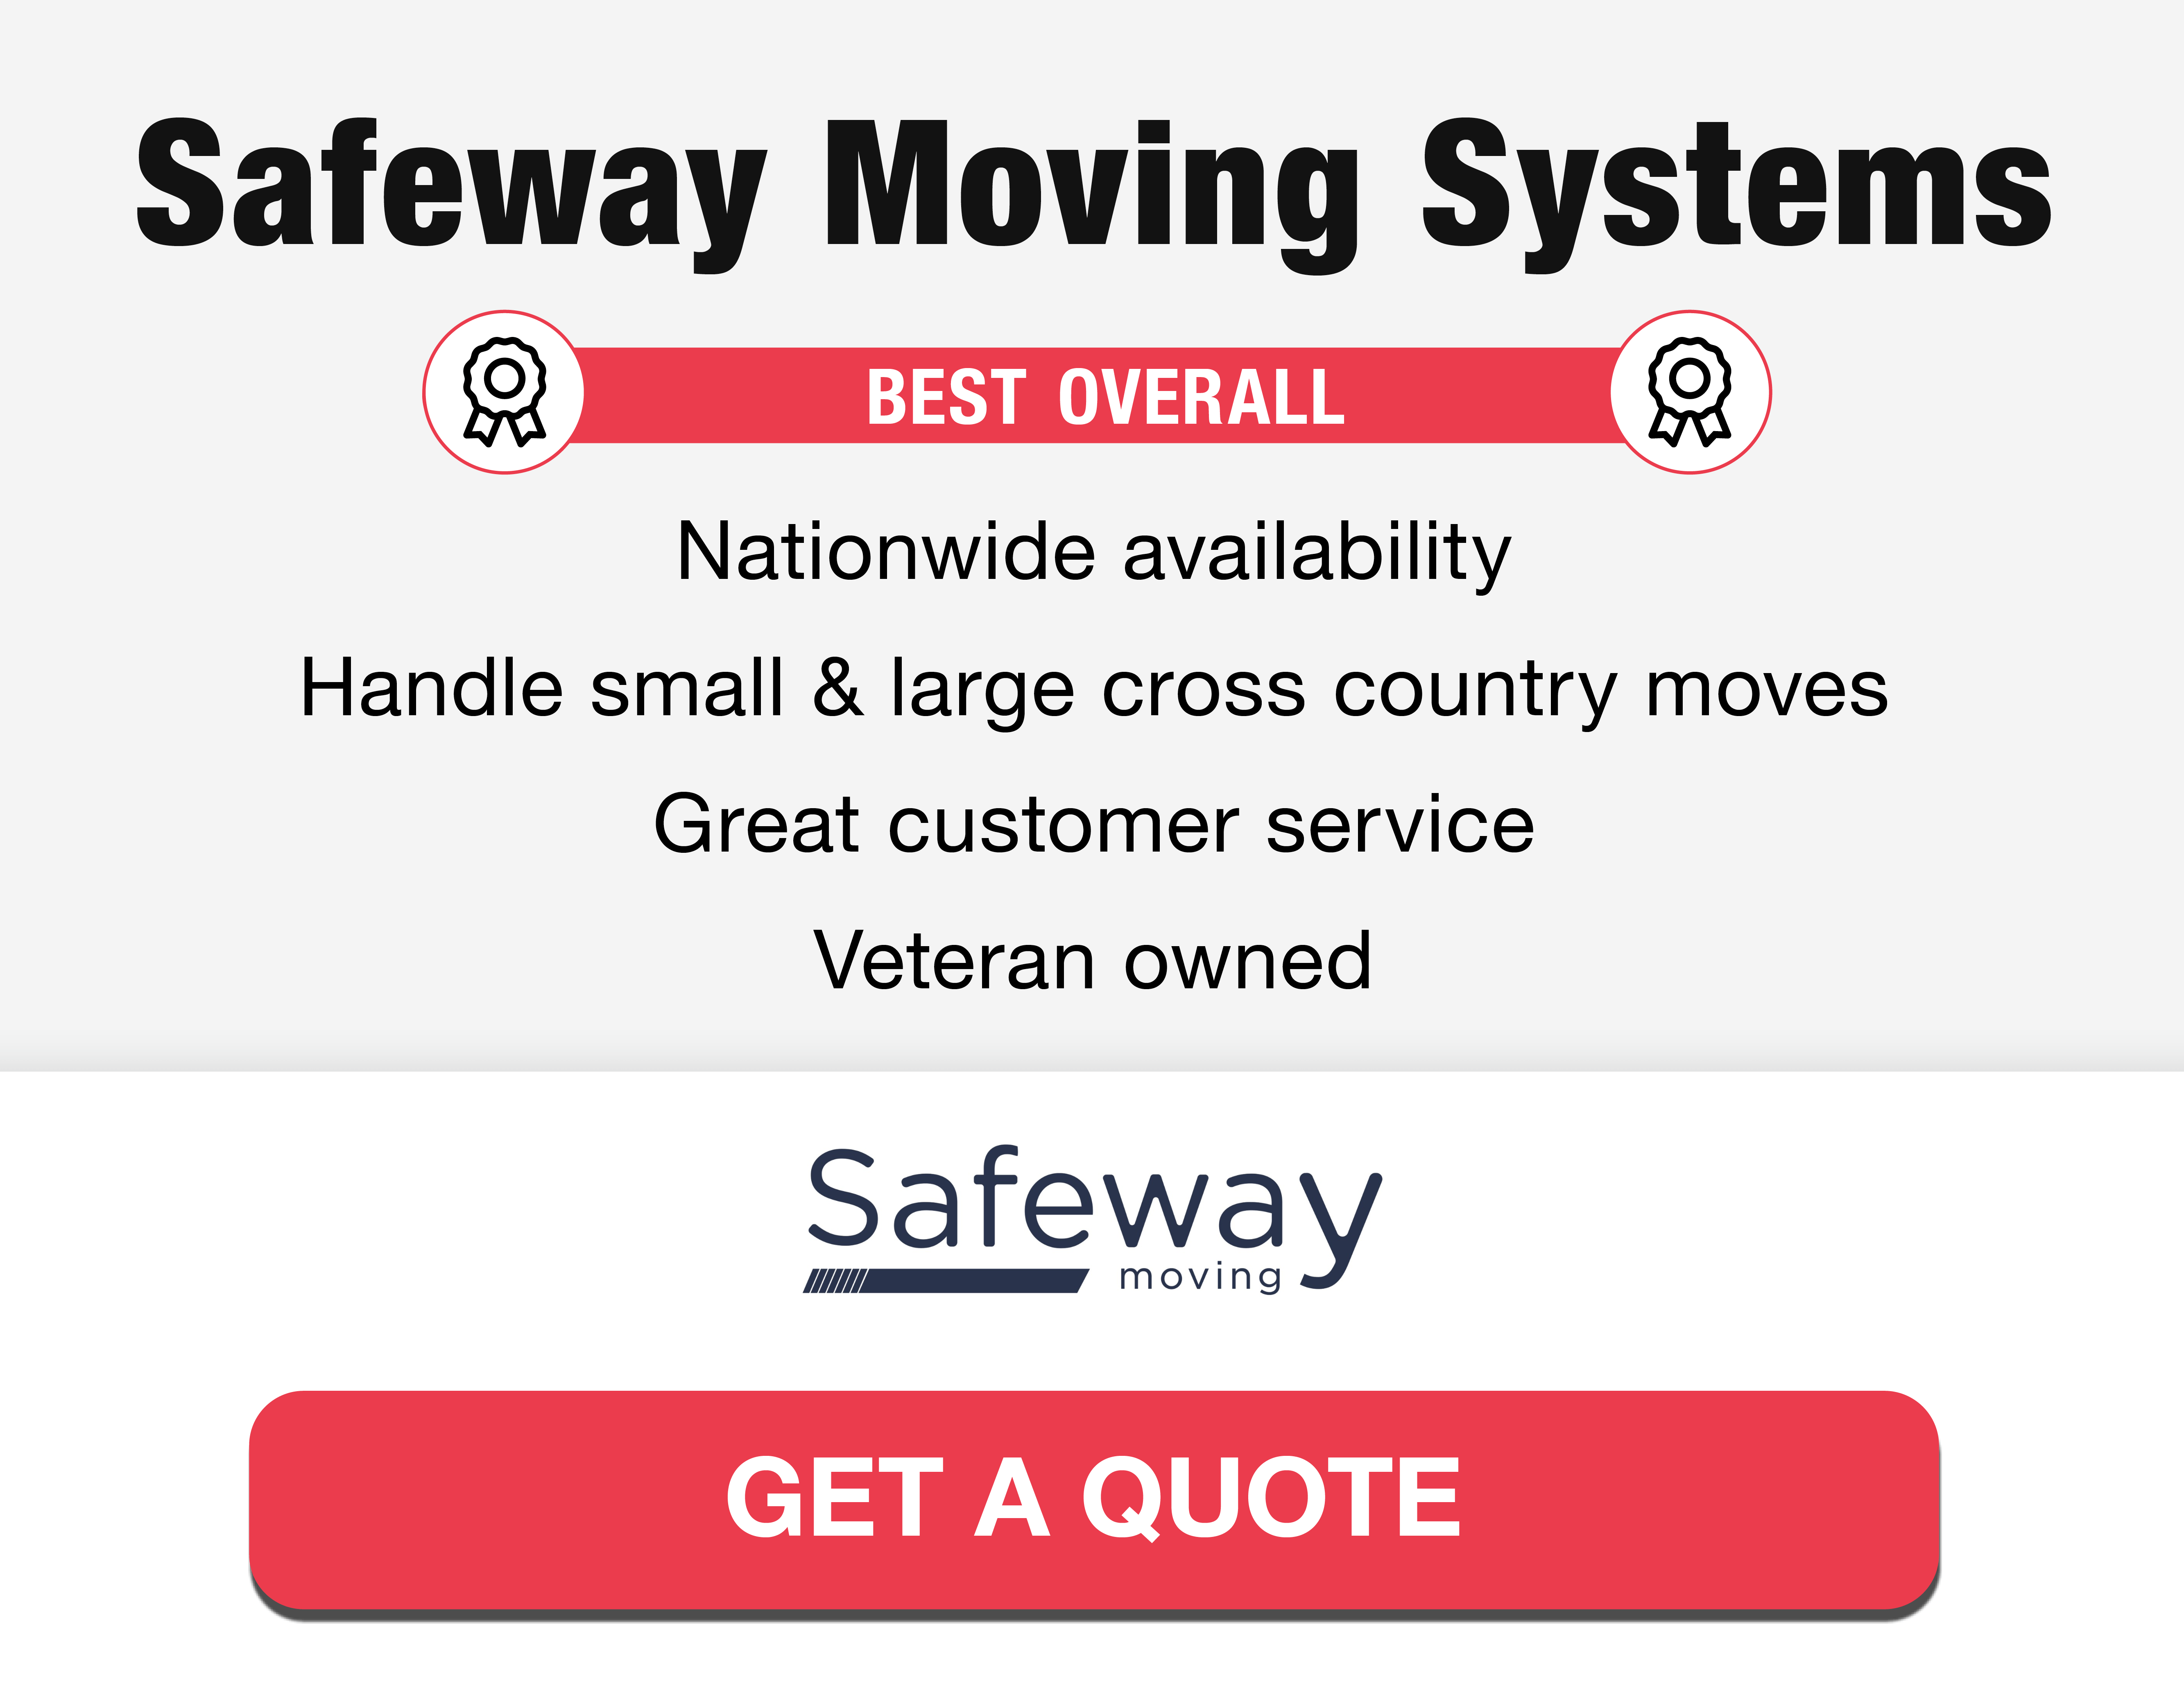 Safeway Moving Systems